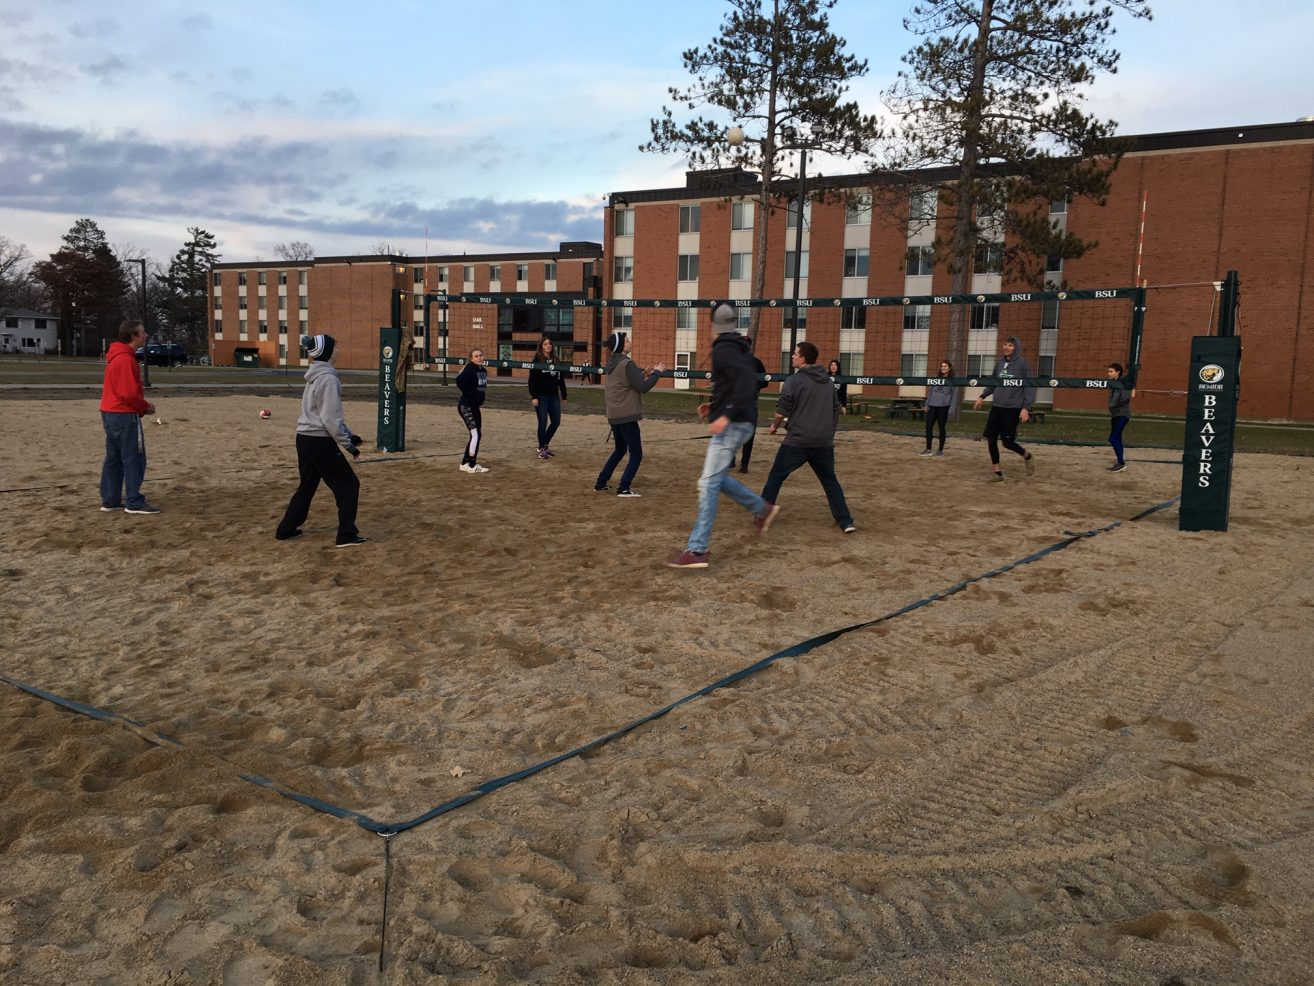 New volleyball courts outside of the BSU dorms.